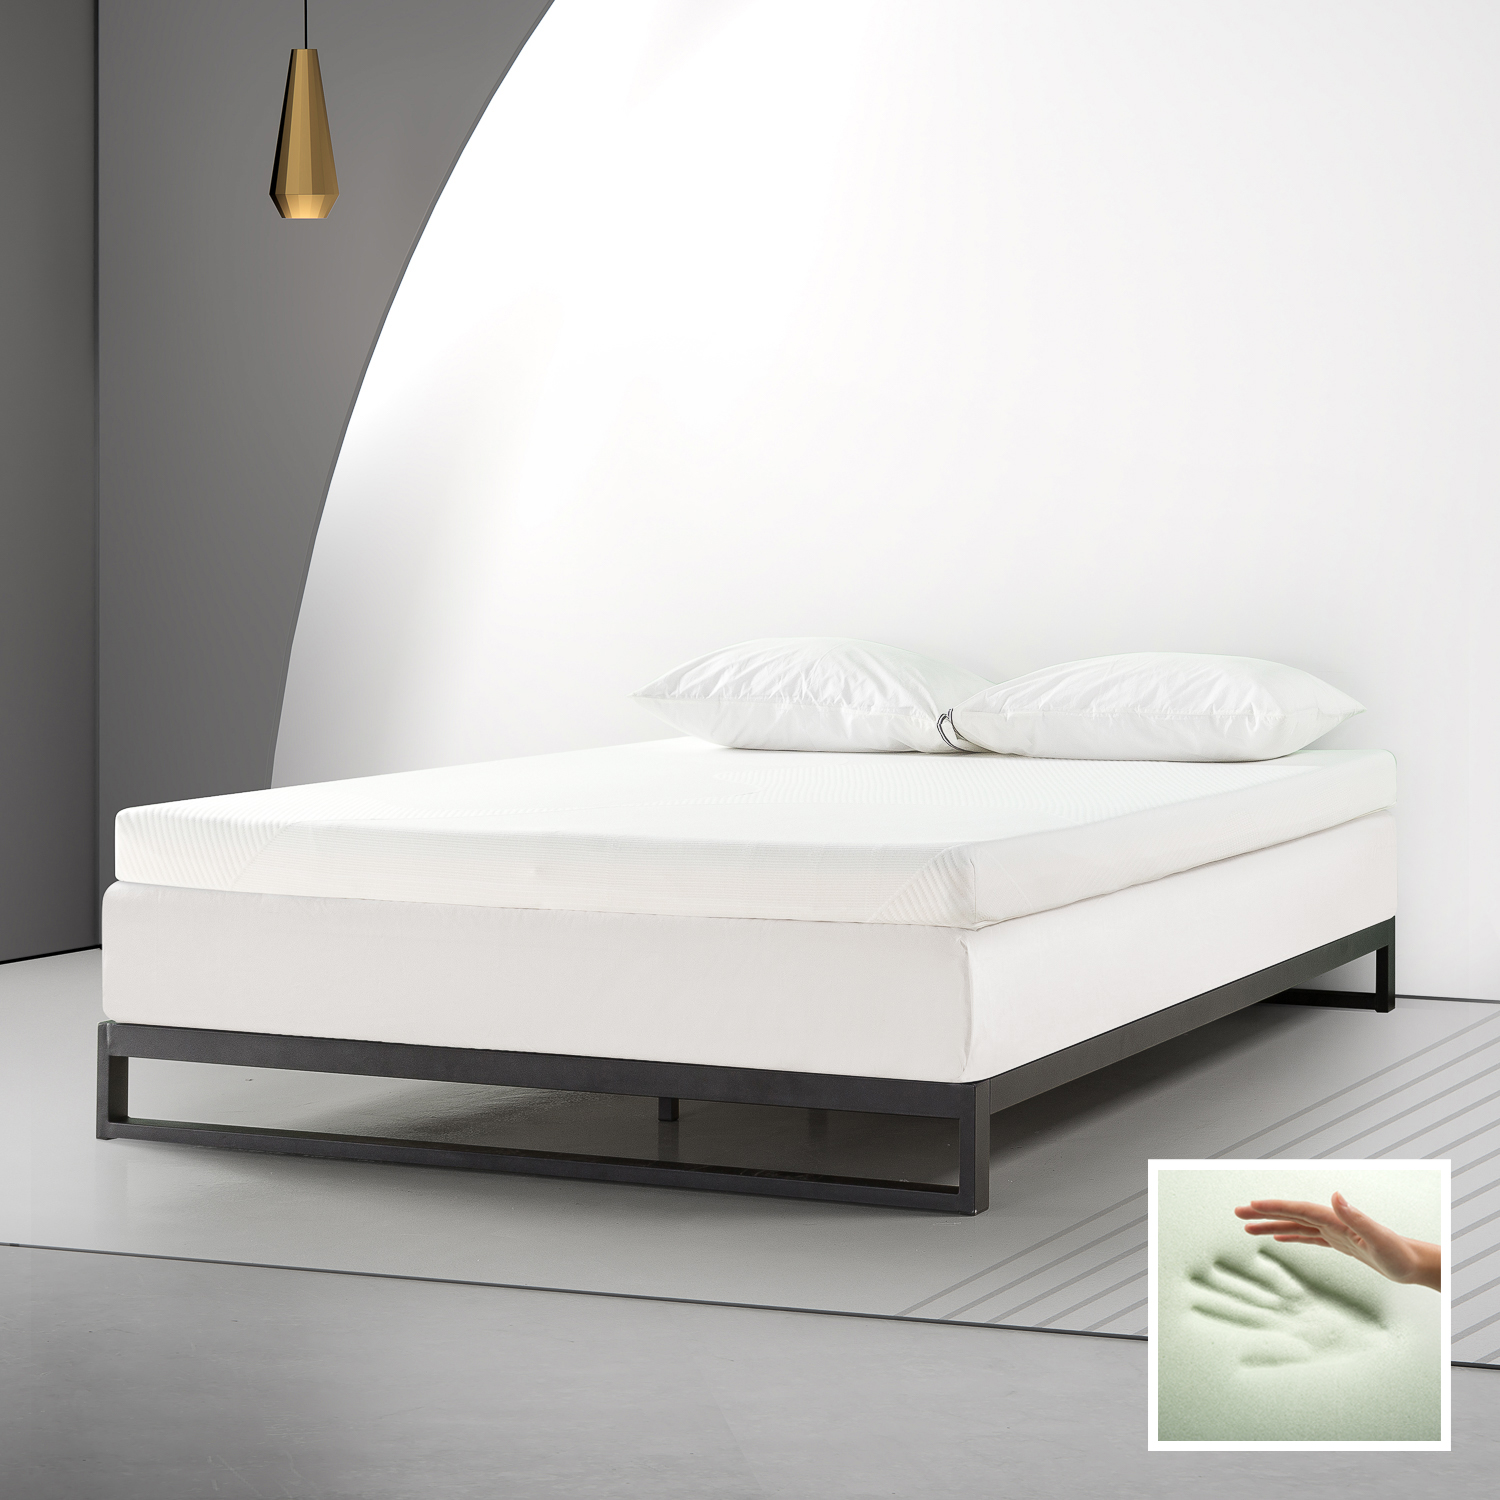 Spa Sensations By Zinus 4 Memory Foam Mattress Topper With Theratouch Twin Walmart Com Walmart Com